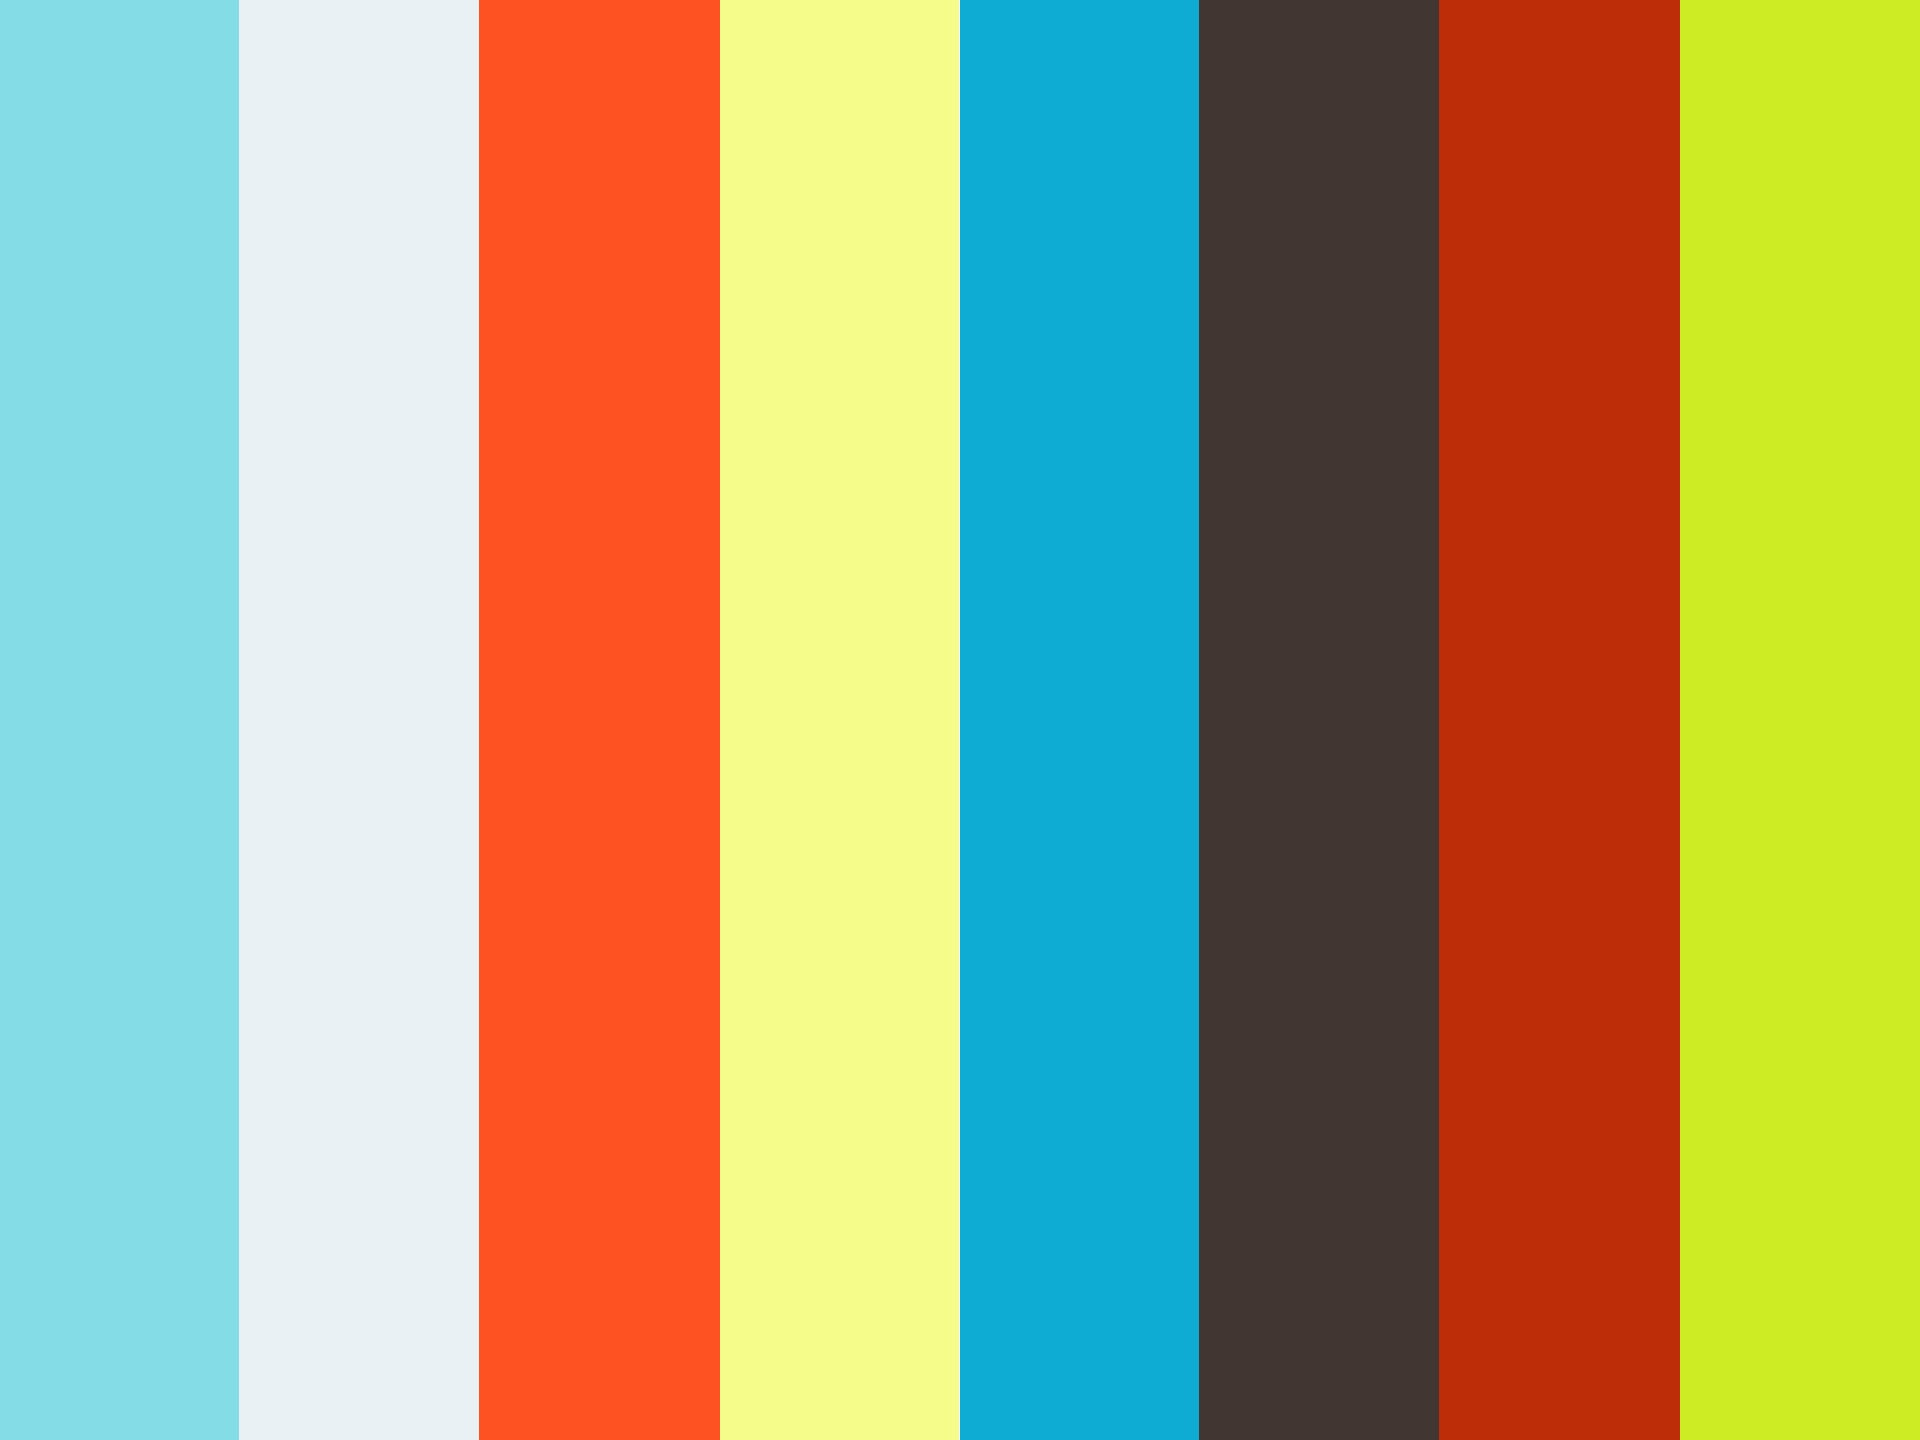 Prognostic Modeling of Preoperative Risk Factors of Pouch Failure 2011